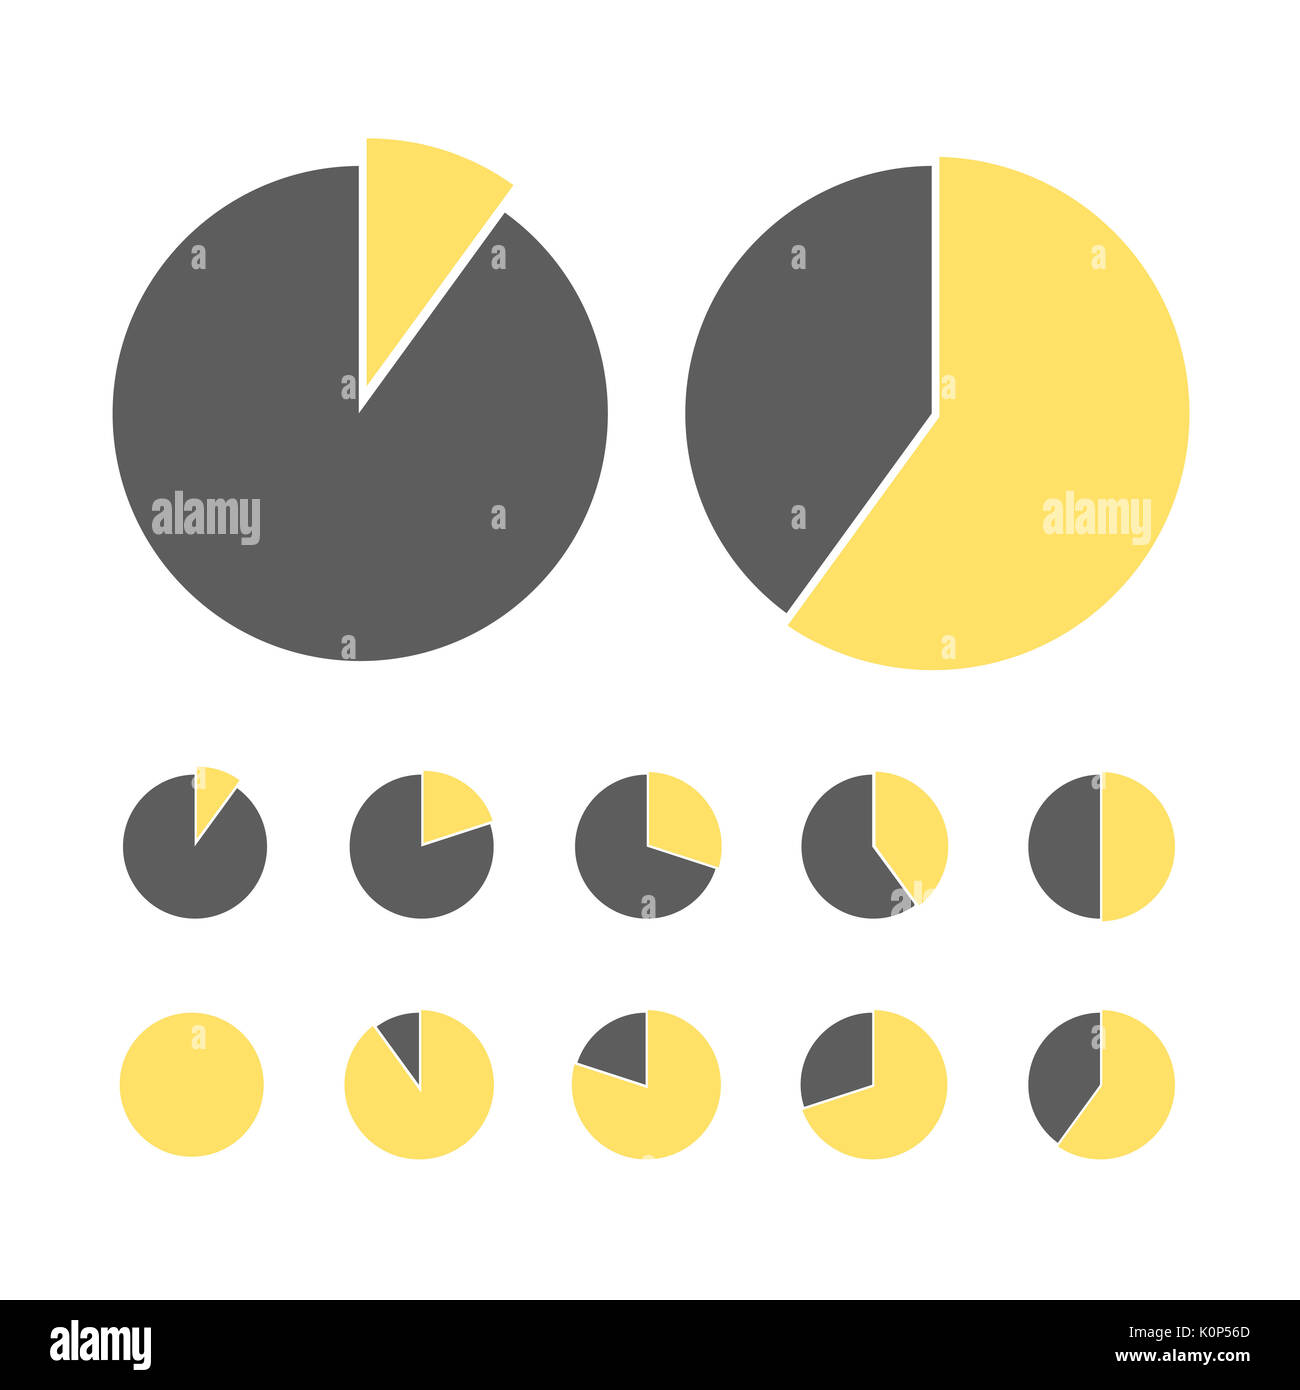 Data visualisation stock photos data visualisation stock images pie chart statistic concept business flow process diagram infographic elements for presentation percentage nvjuhfo Image collections